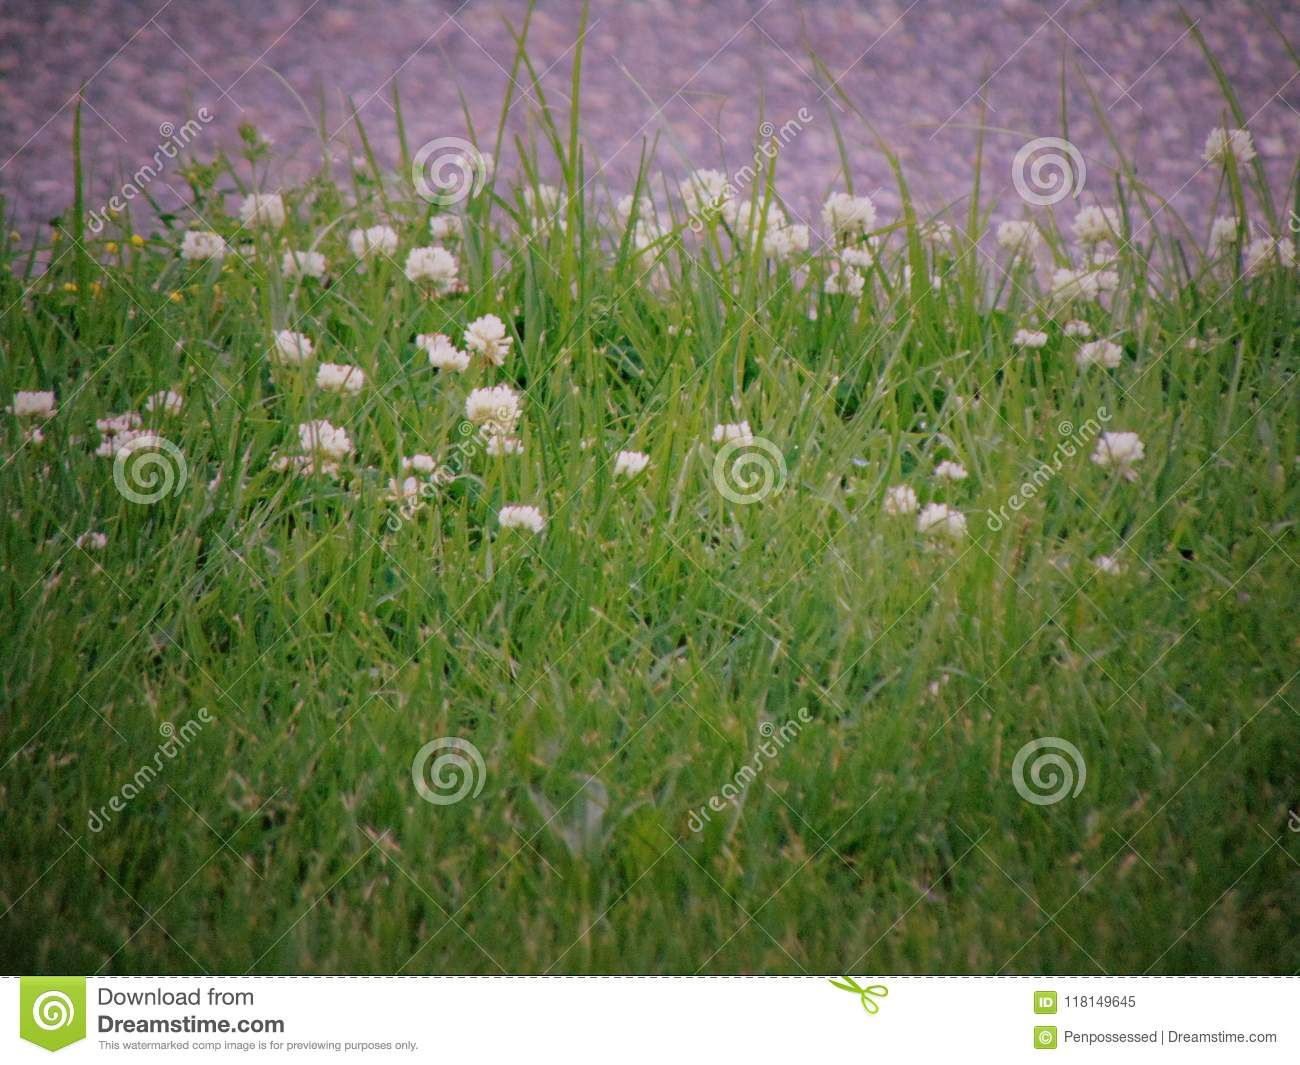 Small White Flowering Weeds Growing In Tall Grass Stock Image